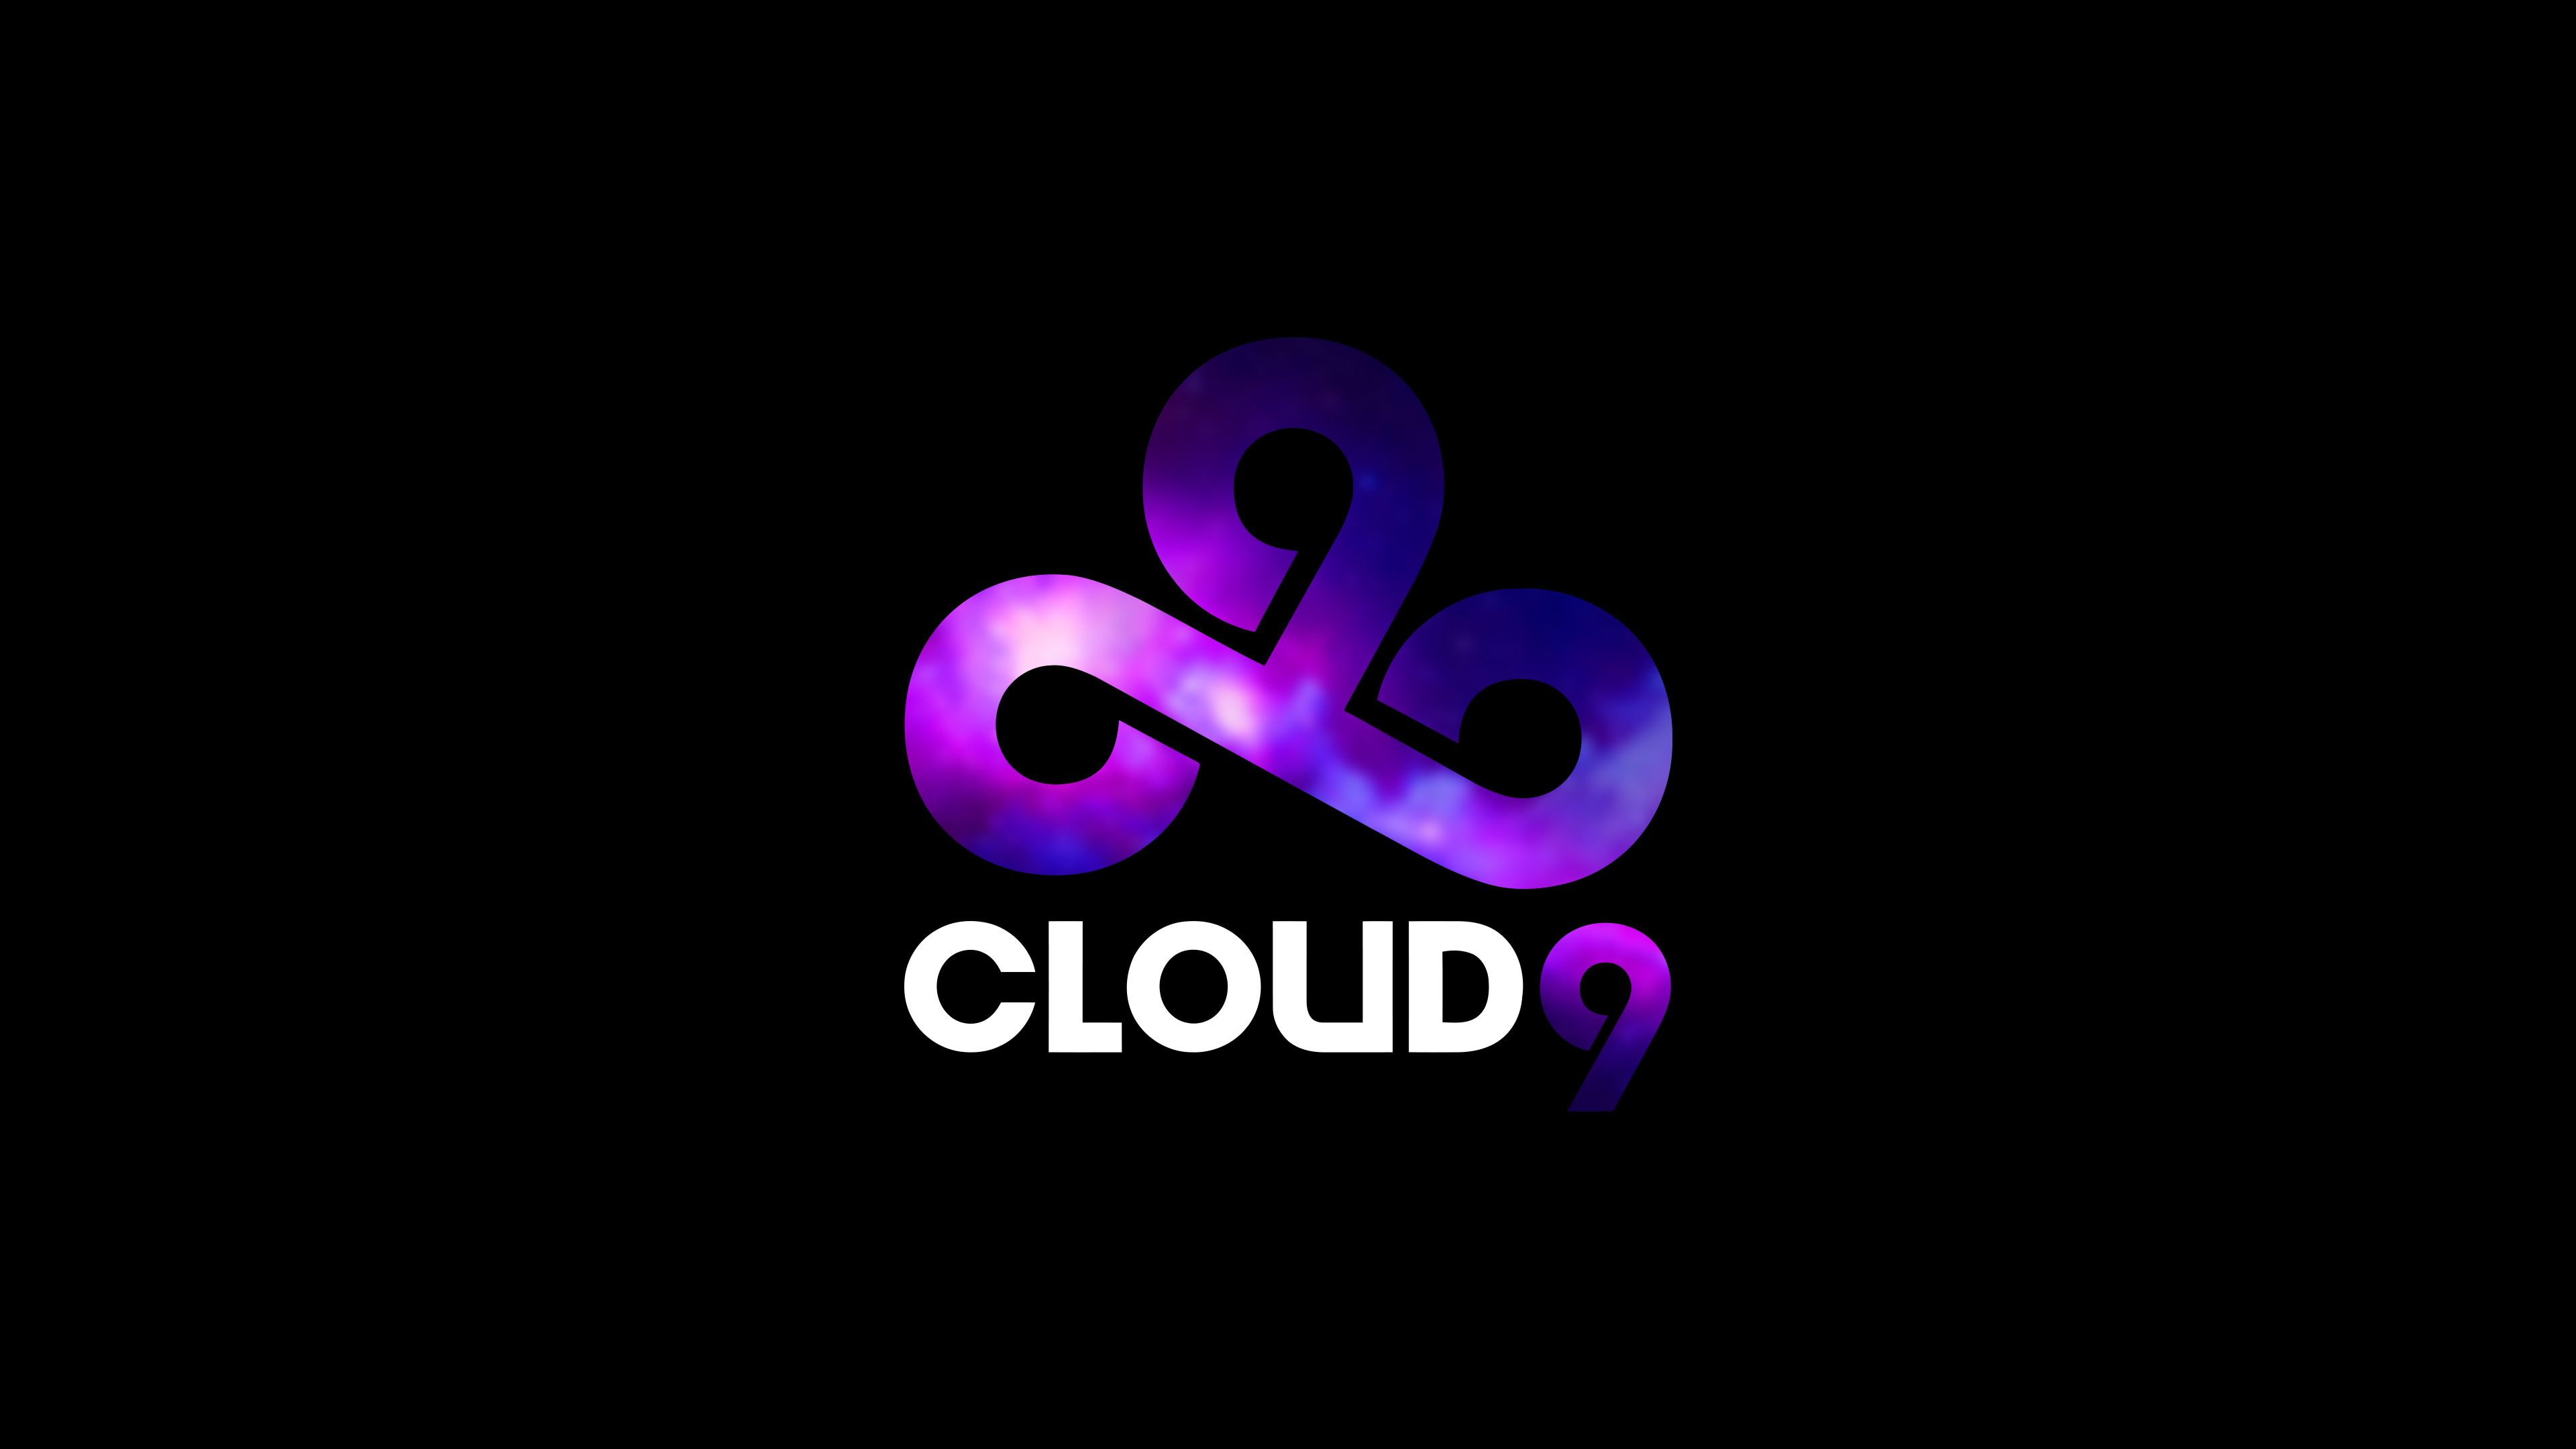 3840x2160 Cloud 9 - LoLWallpapers